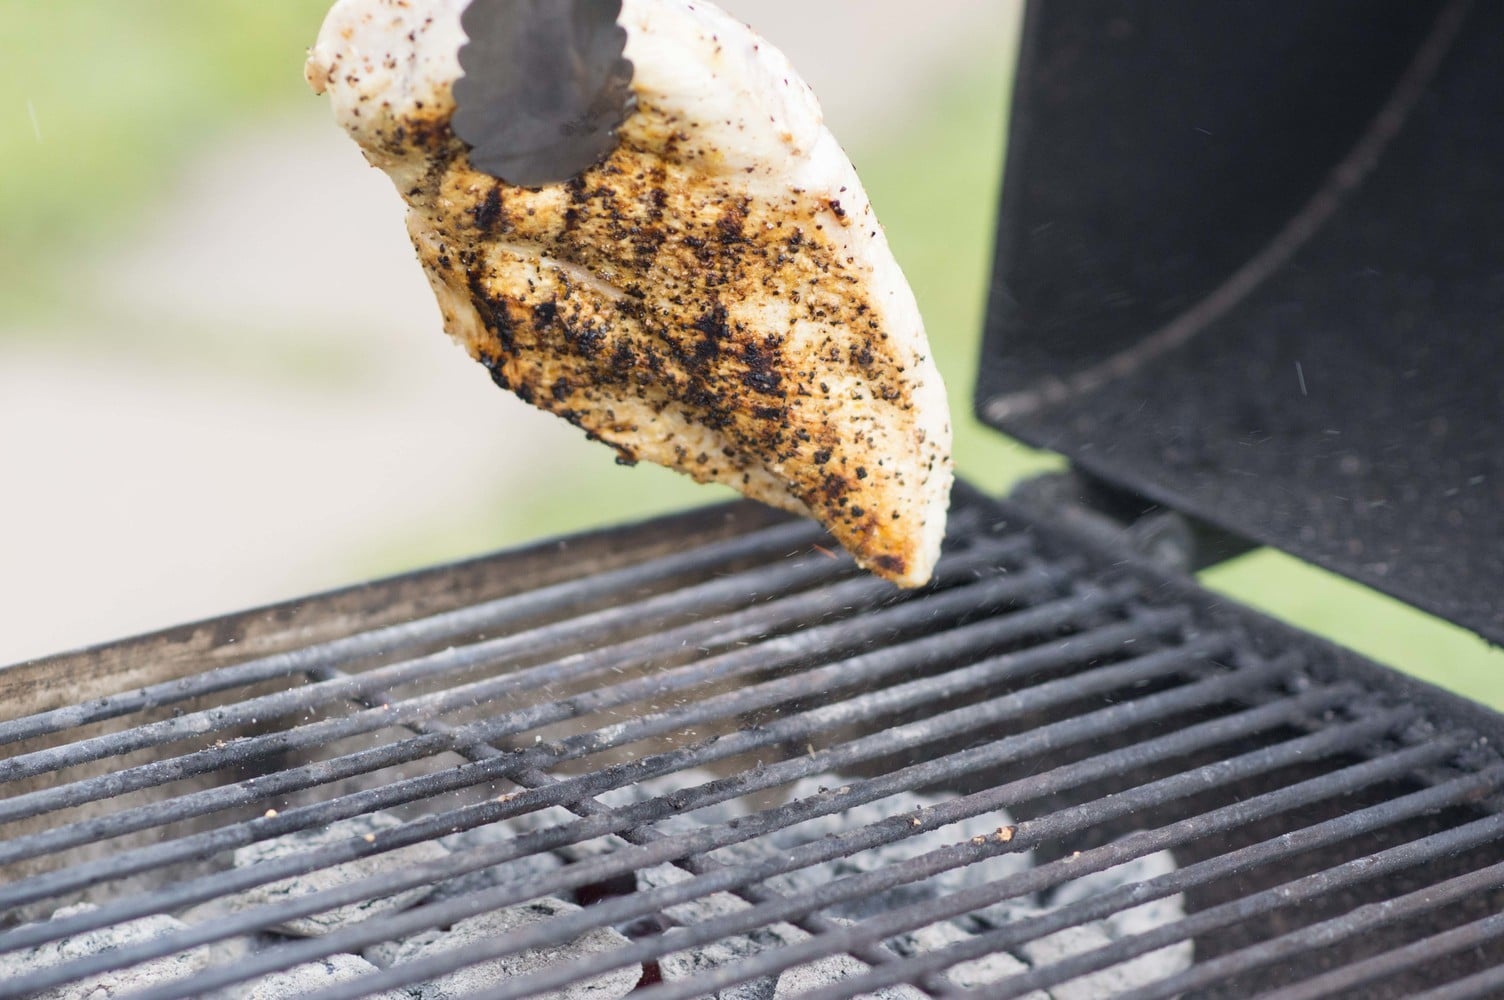 Flipping chicken on the grill for the Marinades & Brining tutorial